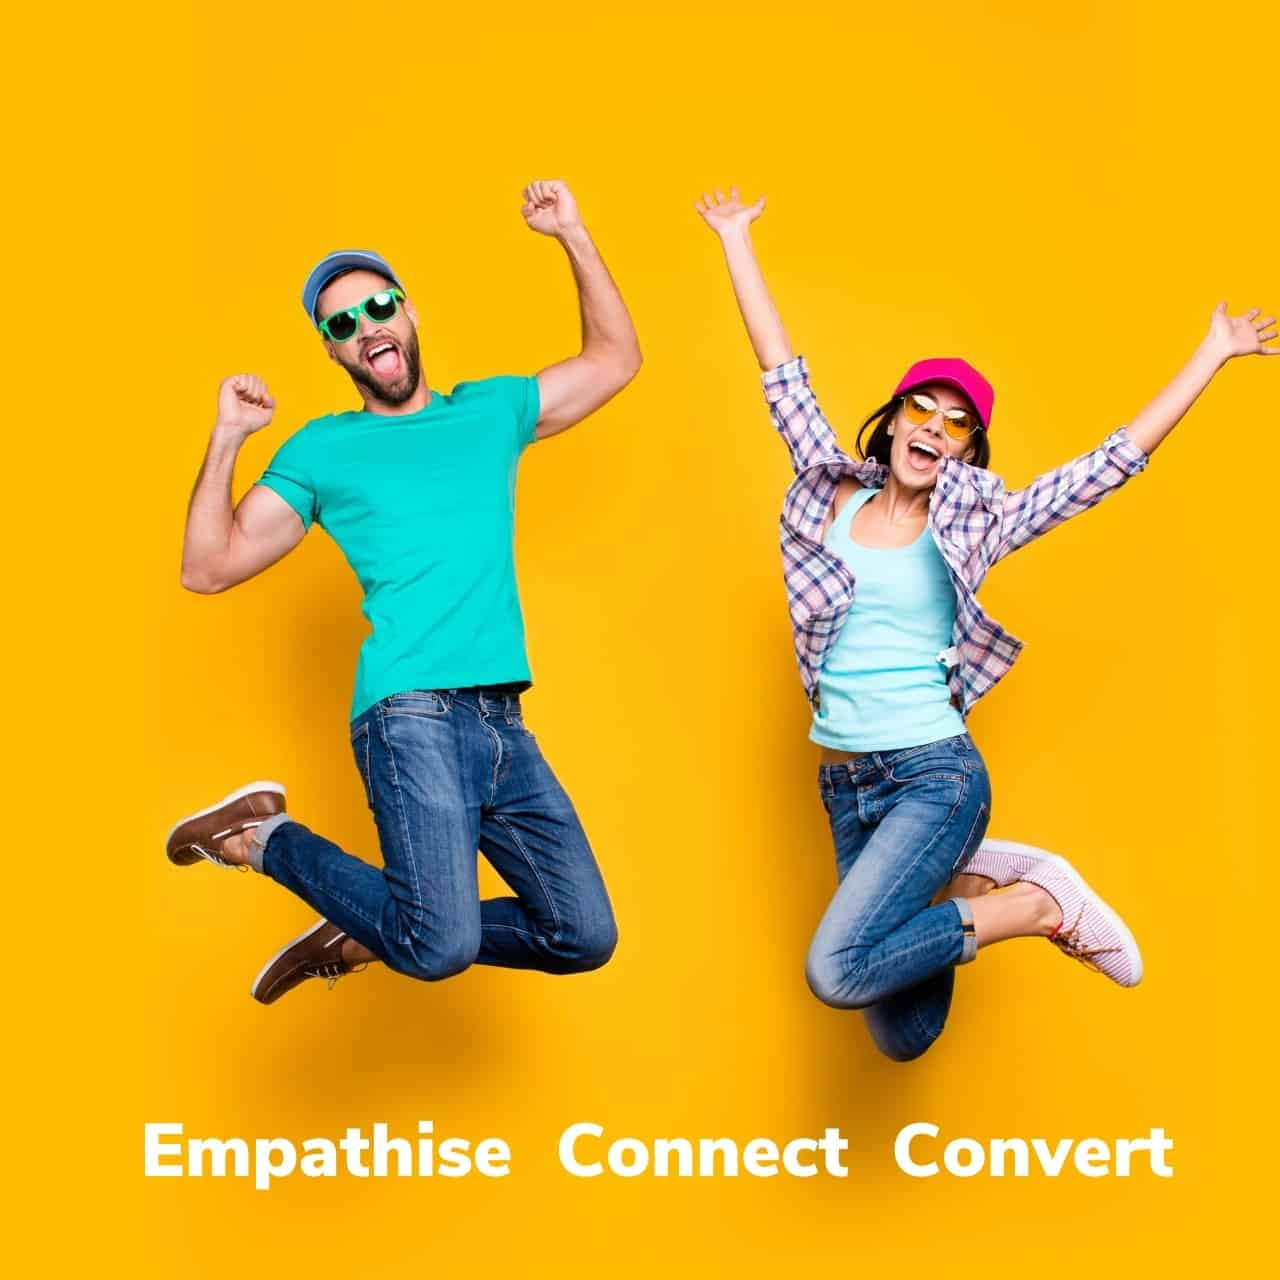 With me as your copywriter you will empathise and deeplyconnect with your audience and convert sales